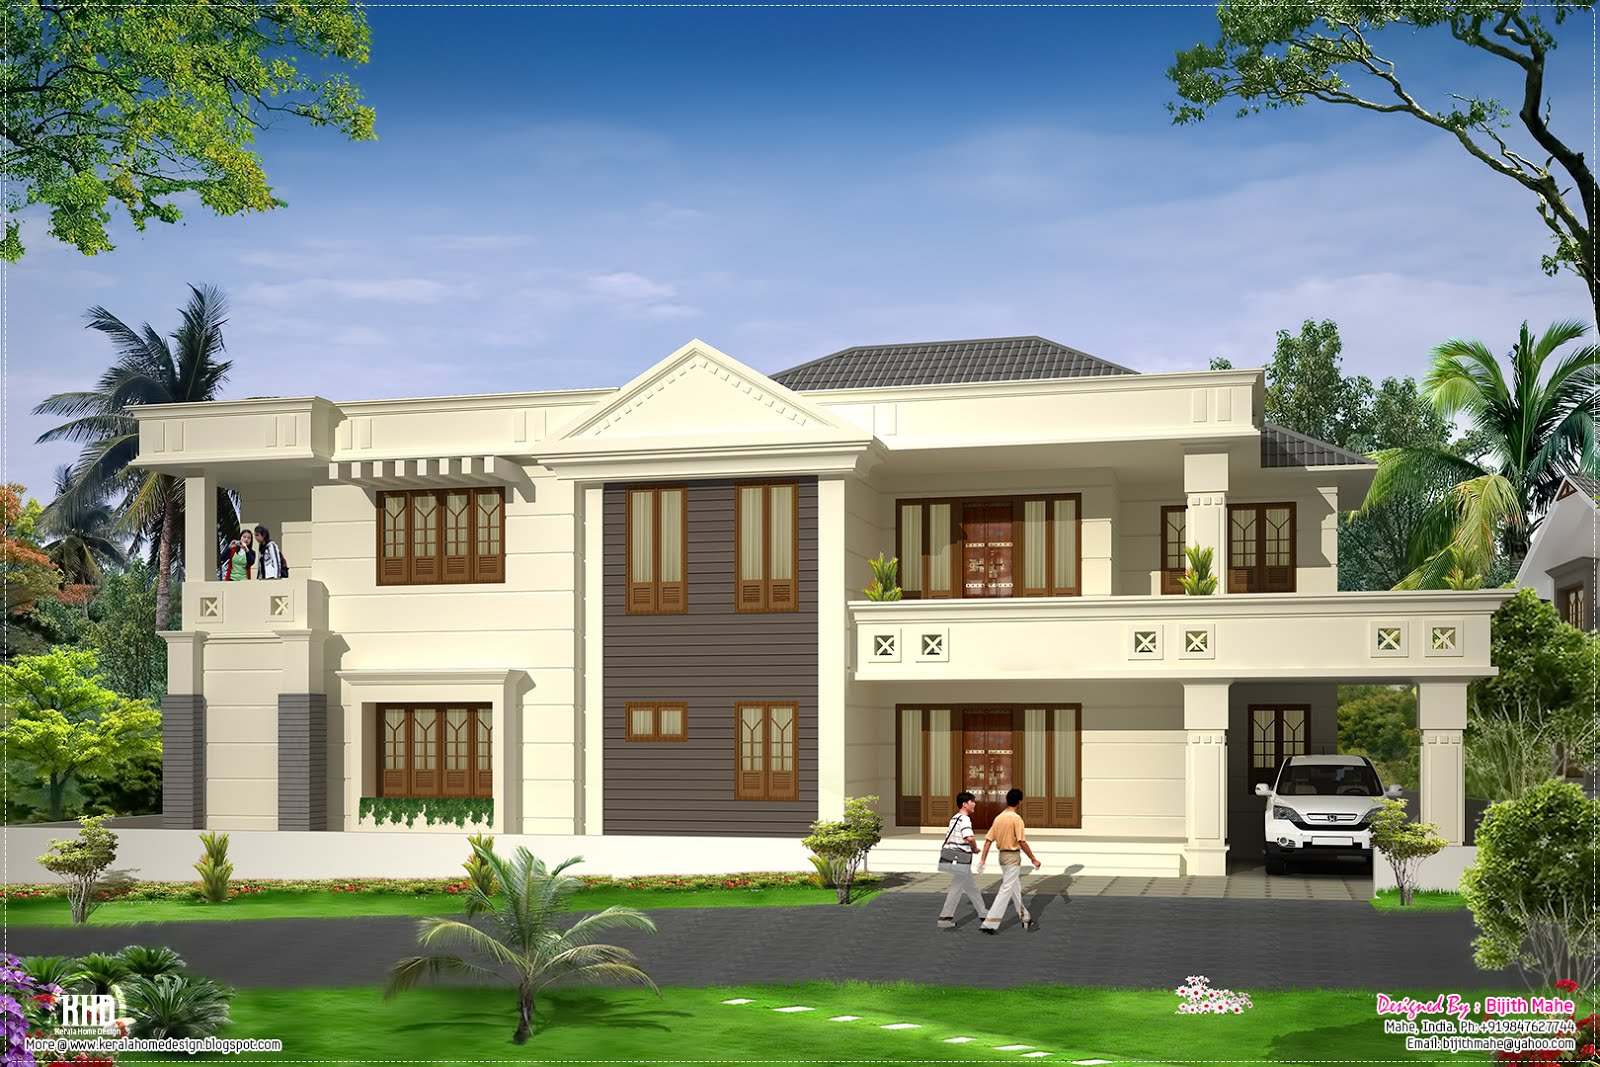 Modern luxury home design - Kerala home design and floor plans